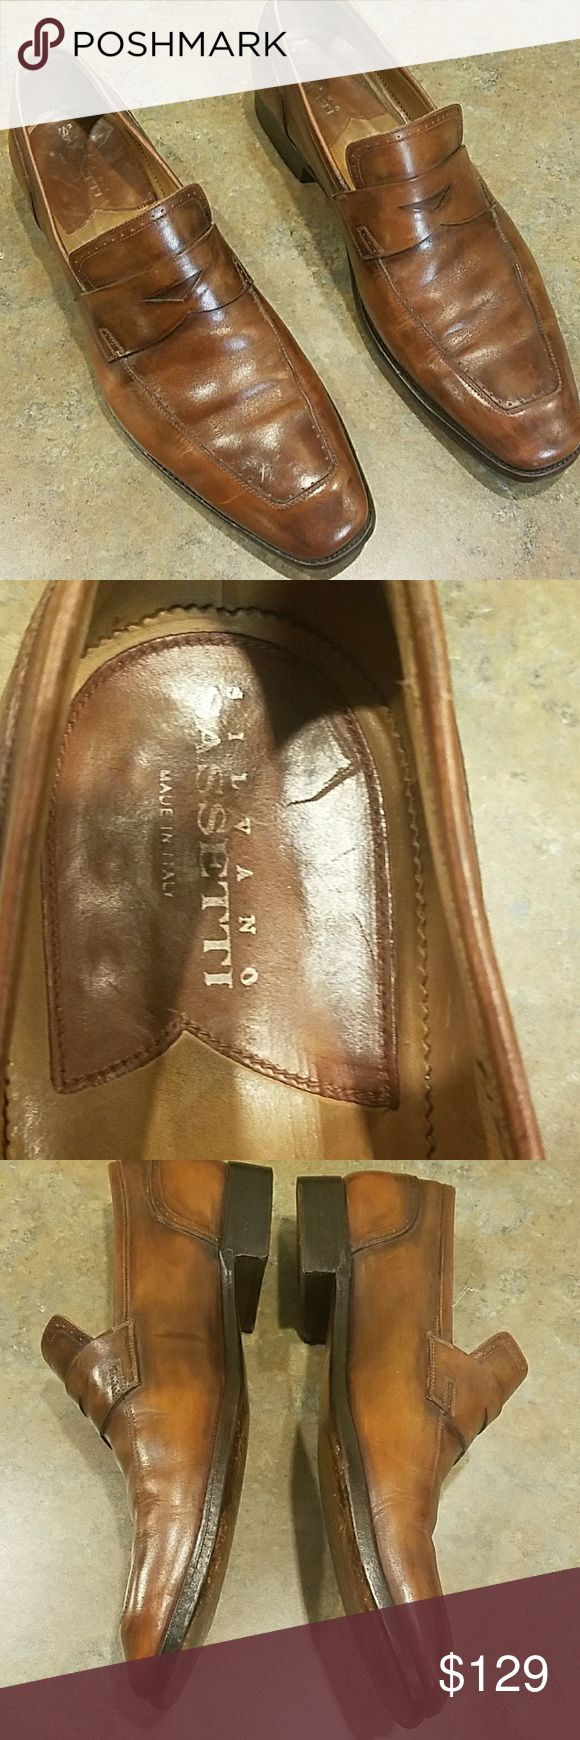 Men SILVANTO SASSETTI Leather Loafers-Slip-ons Good condition. Minor scratch on right side of right shoe.Not a cut or rip just a scratch beneath the true color.  Priced accordingly. MSRP for this shoe $385.  Still a lot of life left in these. Silvano Sassetti Shoes Loafers & Slip-Ons